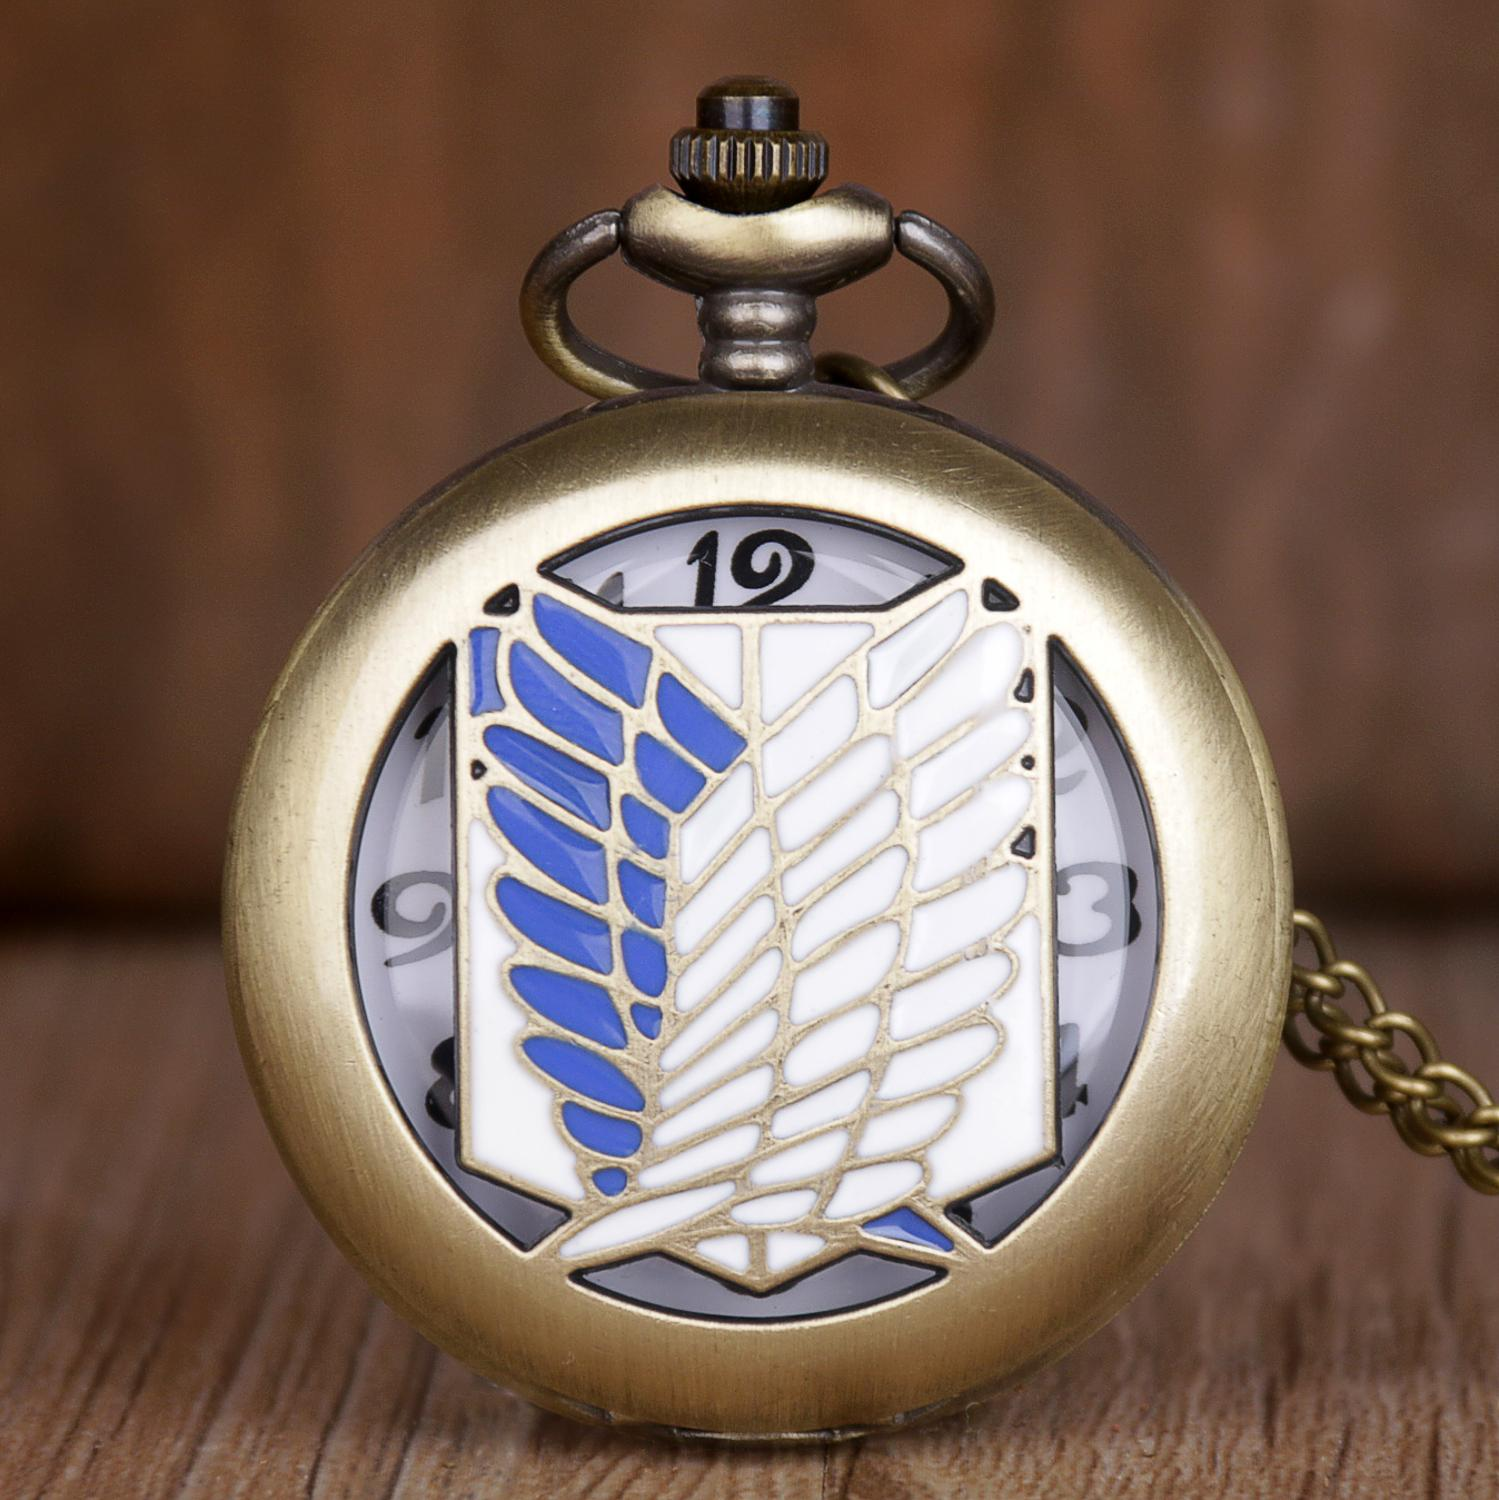 High Quality Retro Bronze Pocket Watch Attack on Titan Wings of Liberty Clamshell Design Quartz Pocket Watch Gift for Men Women